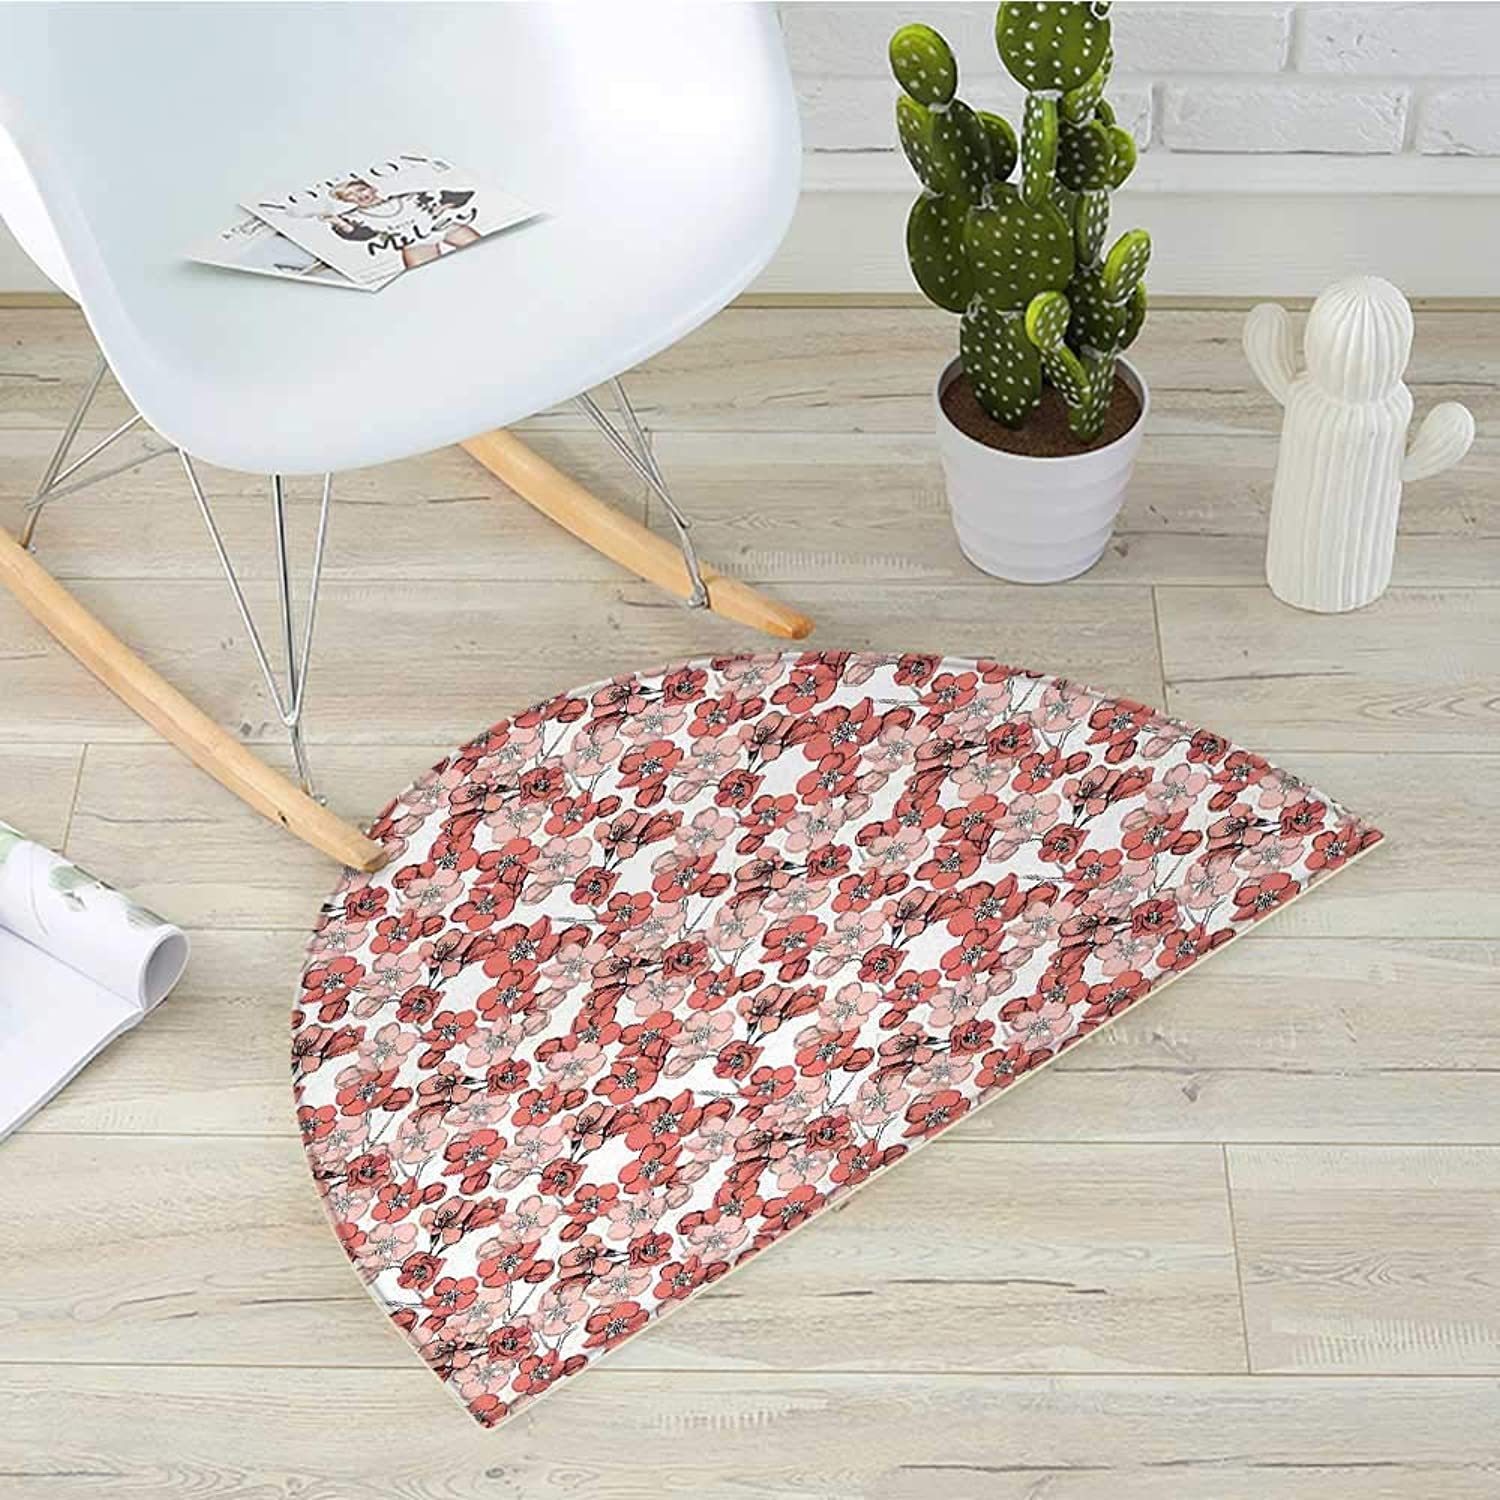 Cherry Blossom Semicircular CushionSpring Season Floral Hand Drawn Style Ornament Japanese Asian Nature Entry Door Mat H 39.3  xD 59  Coral bluesh White